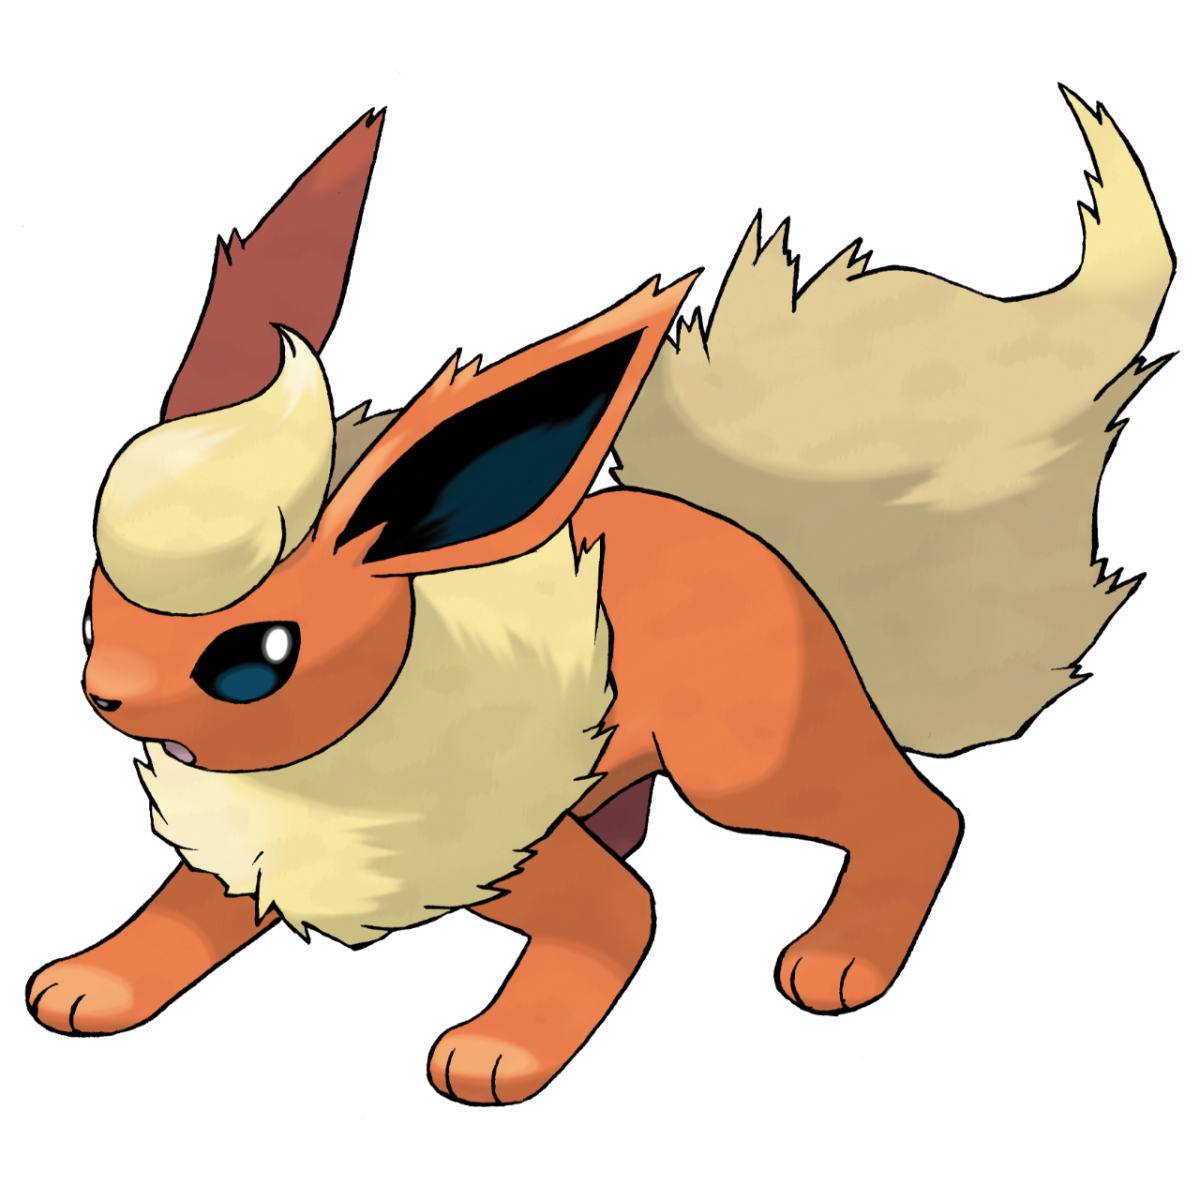 Pokemon X and Y Walkthrough, Pokemon Move Sets: Flareon